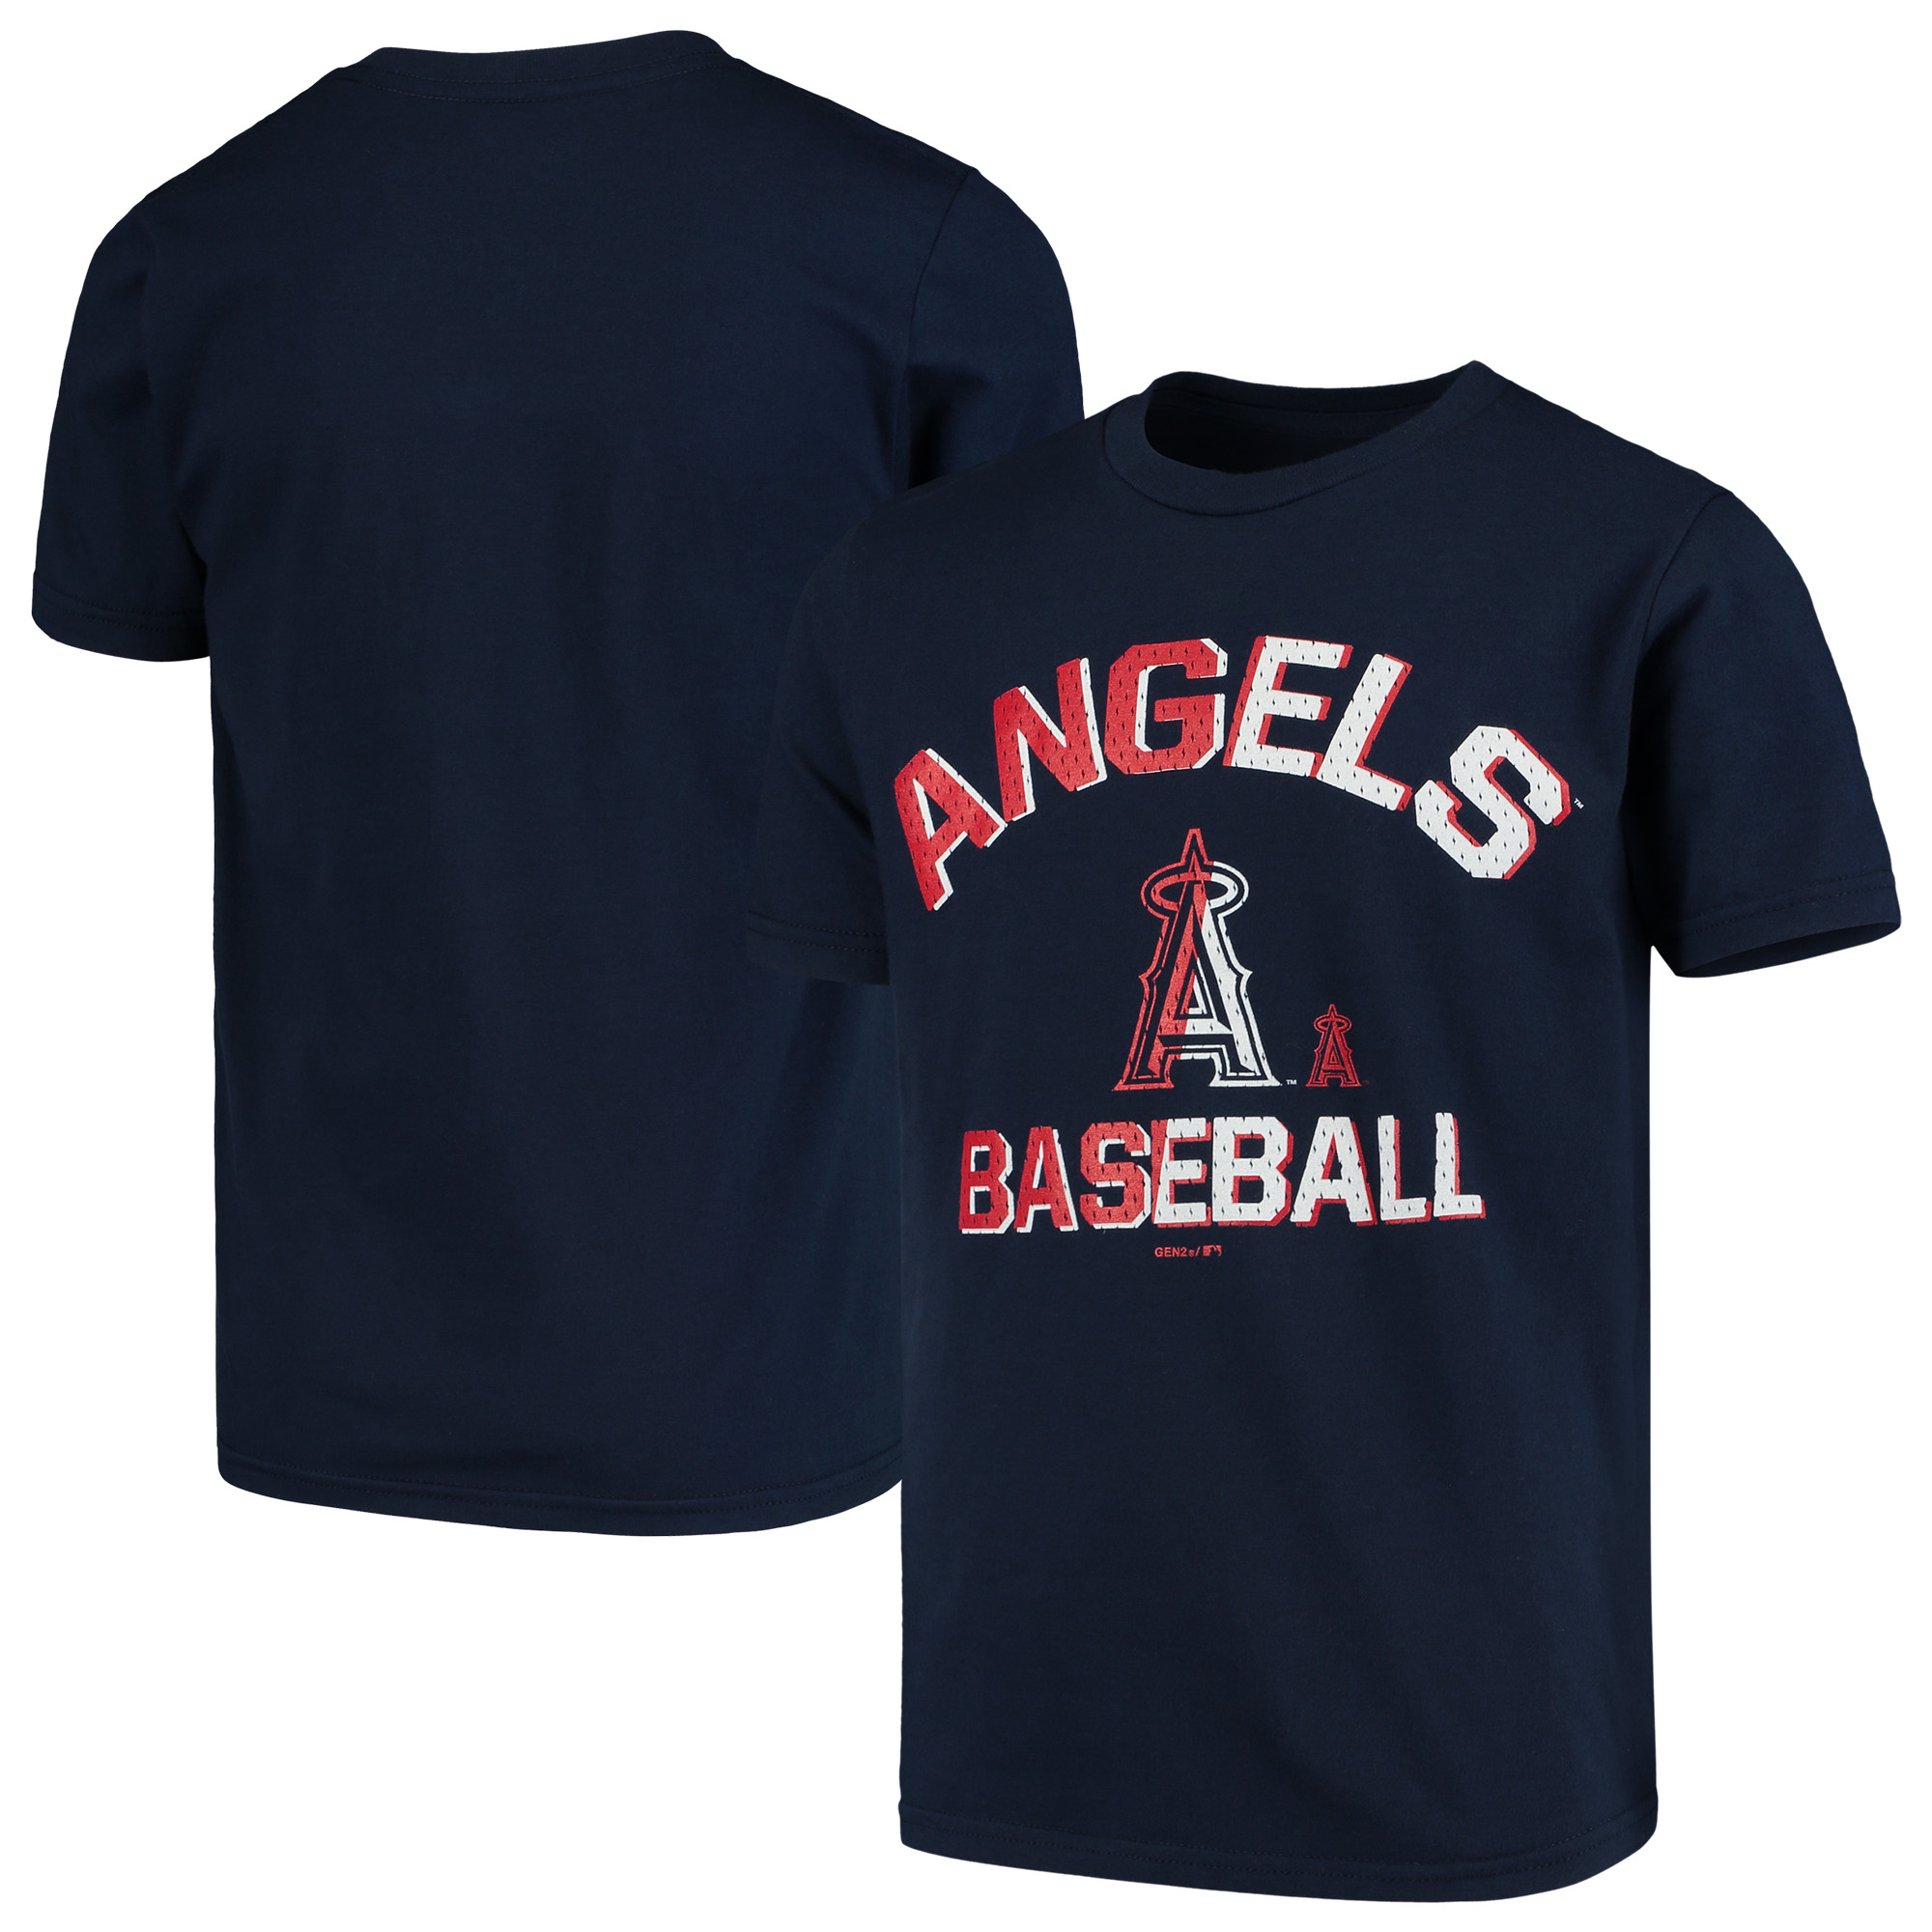 Los Angeles Angels Youth Team Trainer T-Shirt - Navy